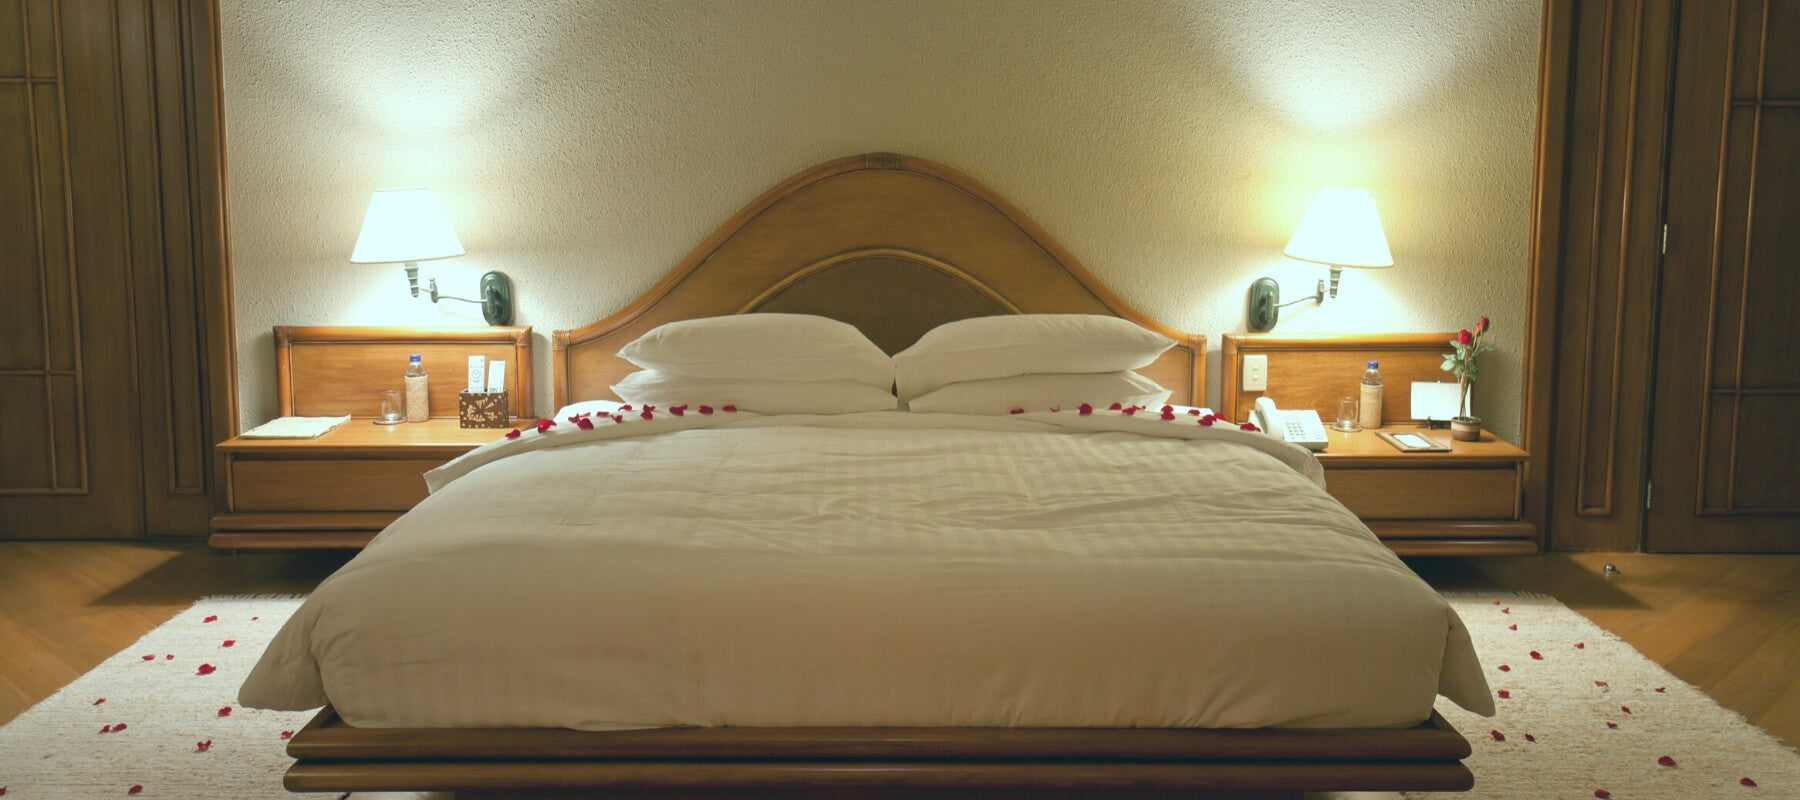 One King bed in a low-light bedroom